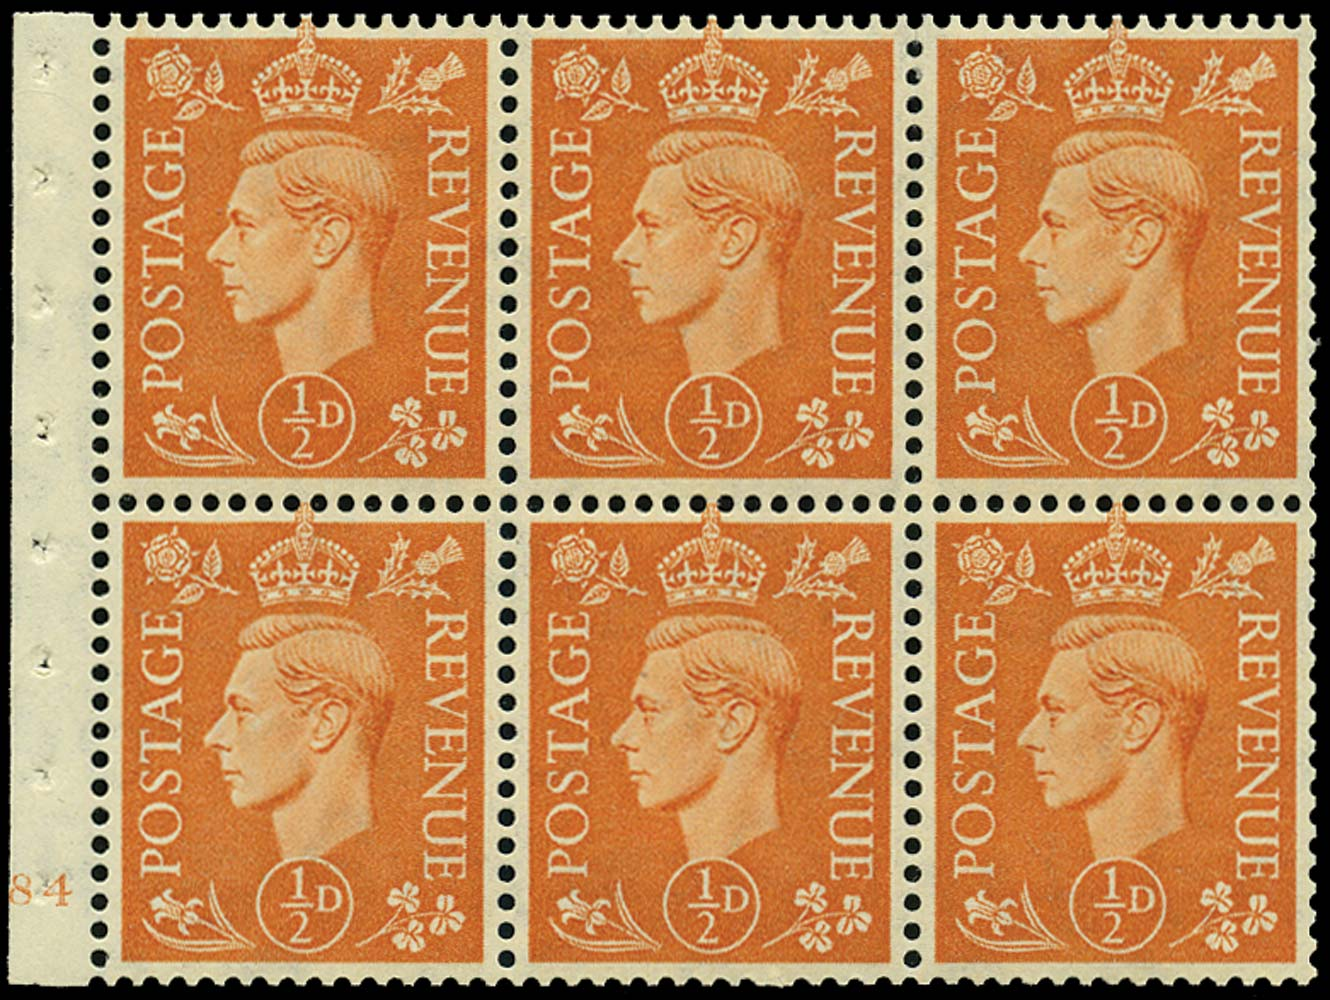 GB 1951  SG503d Booklet pane E84 (no dot)